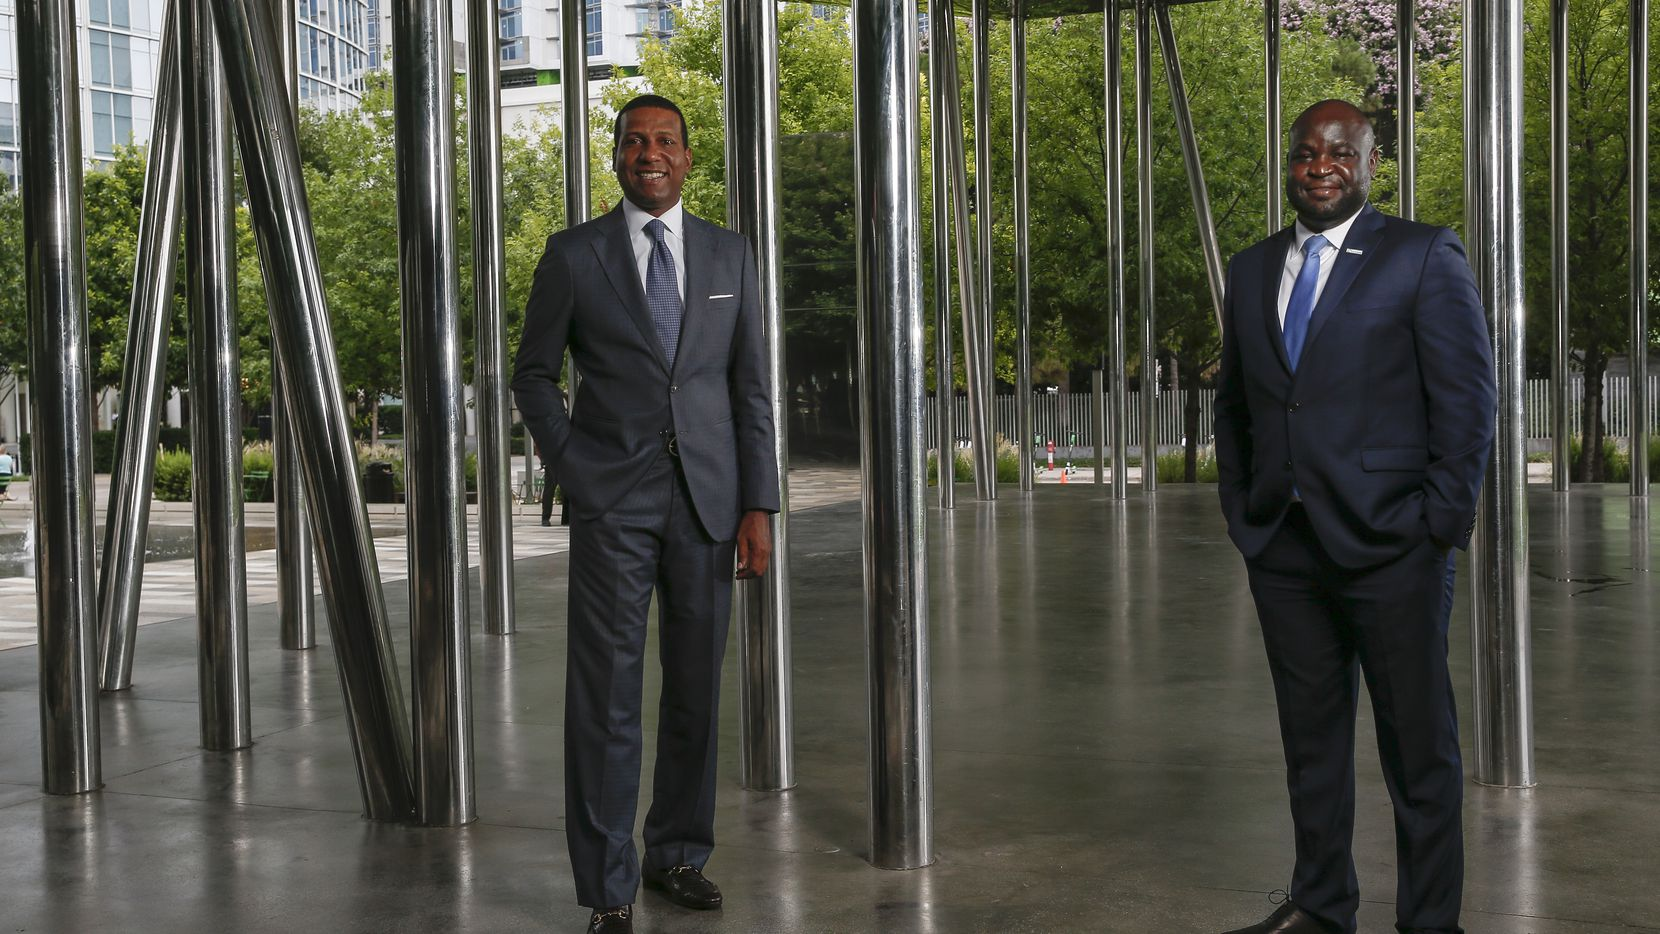 Fred Perpall (left), chairman of the Dallas Citizens Council and CEO of The Beck Group, and John Olajide, chairman of the Dallas Regional Chamber and CEO of Axxess, posed for a photograph on July 7 at Klyde Warren Park in Dallas.